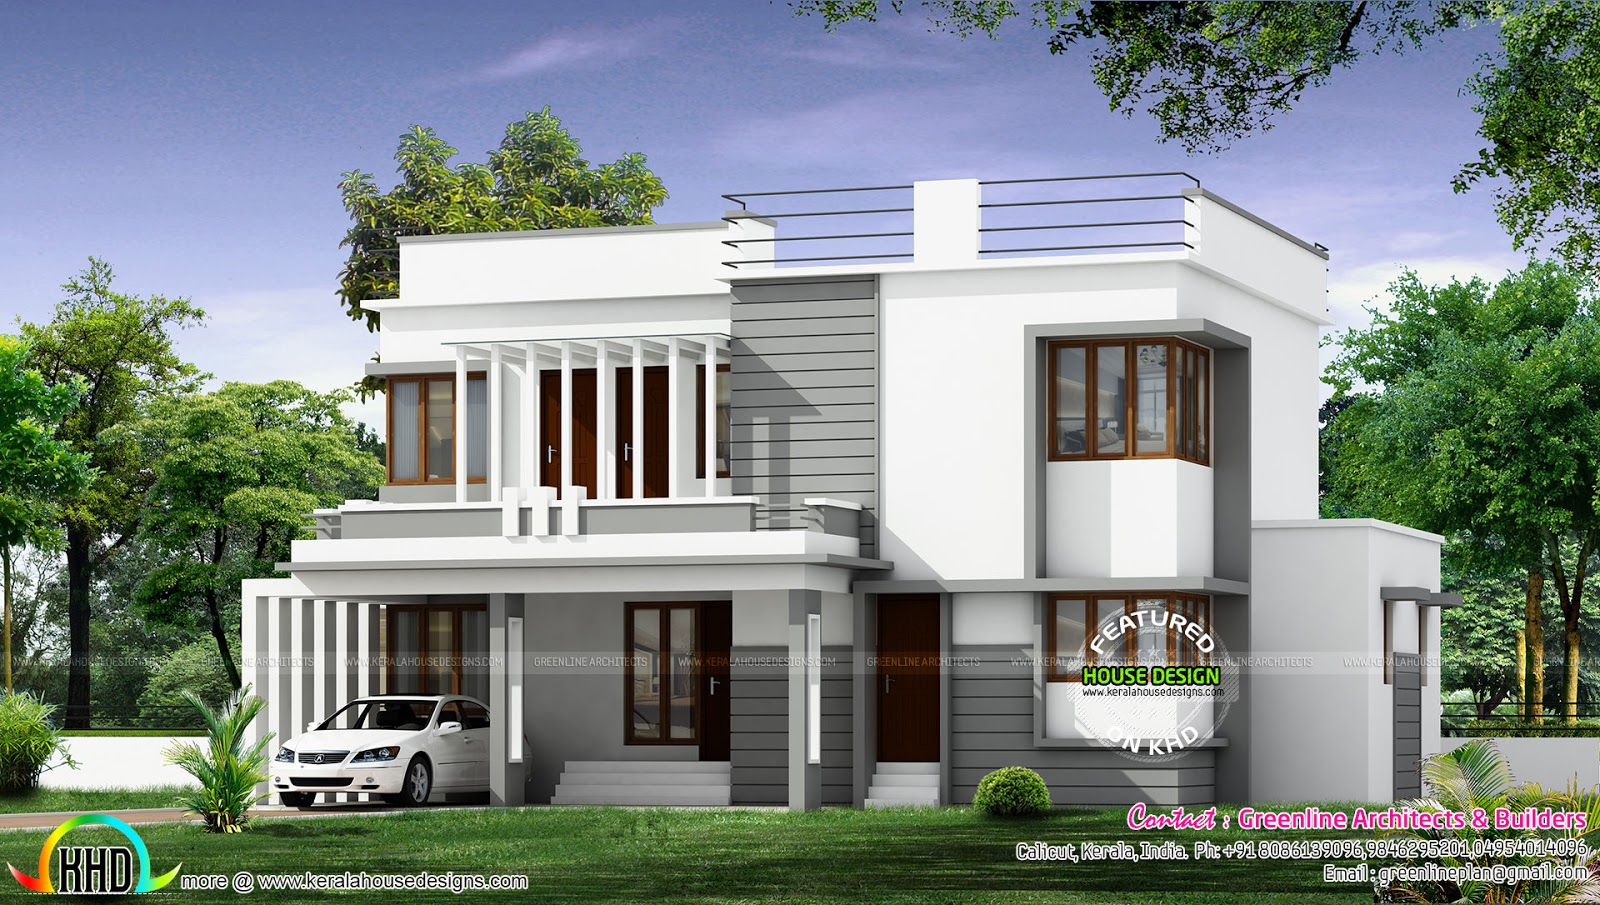 New modern house architecture kerala home design and for Home gallery design